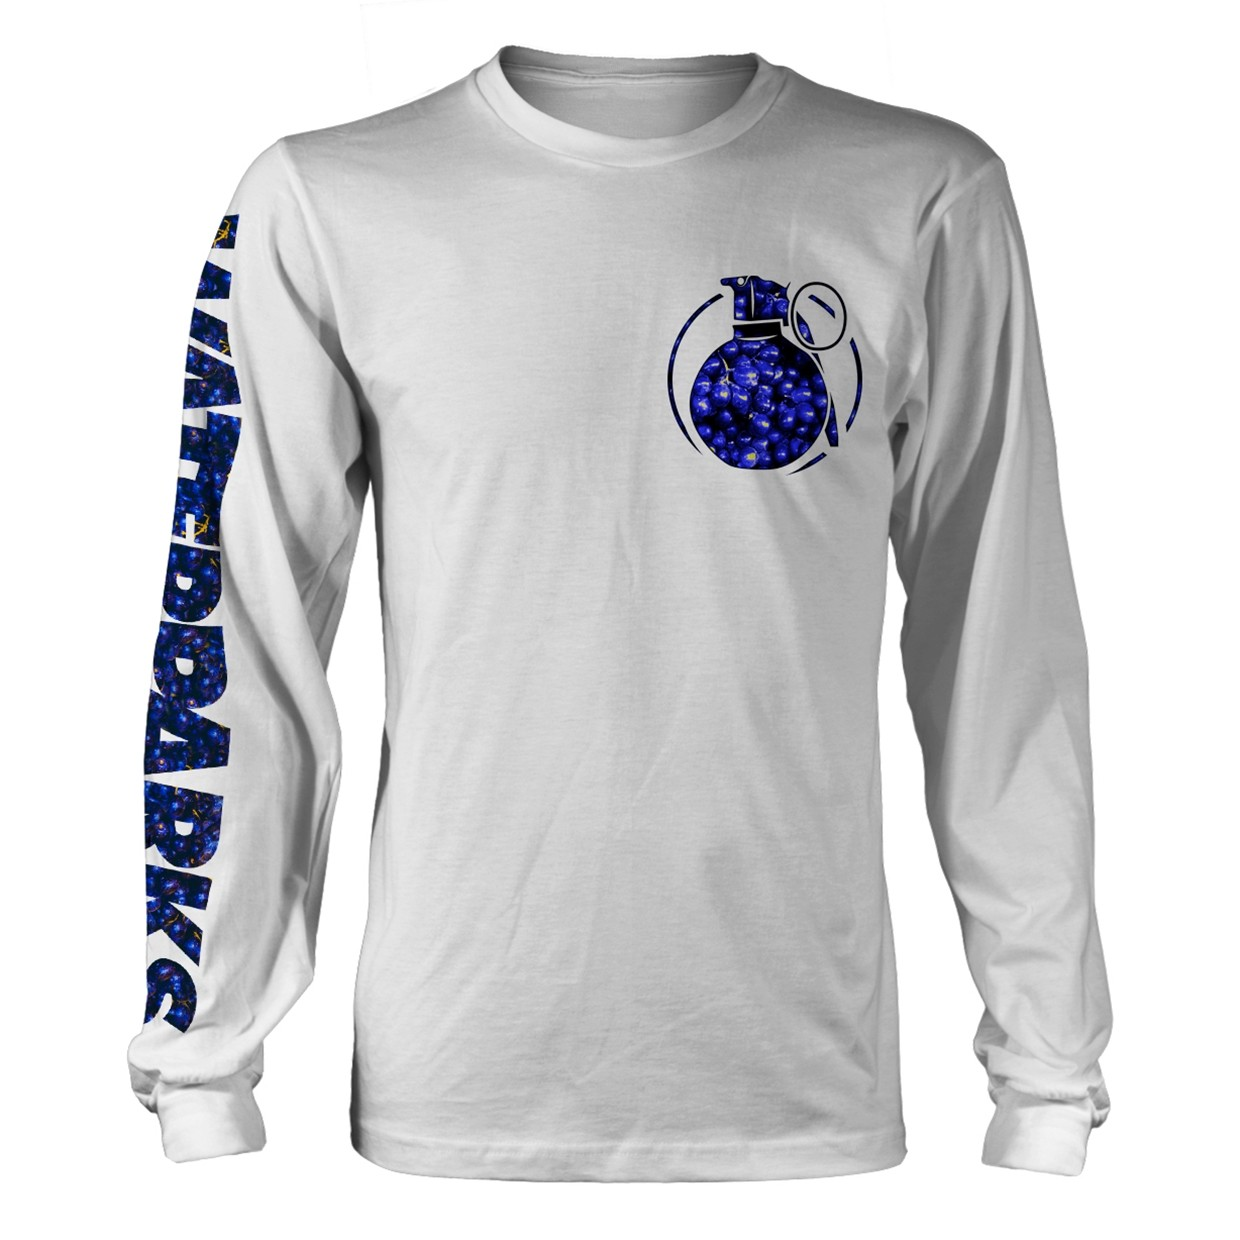 NEW MENS LONG SLEEVE SHIRT Double Dare Waterparks